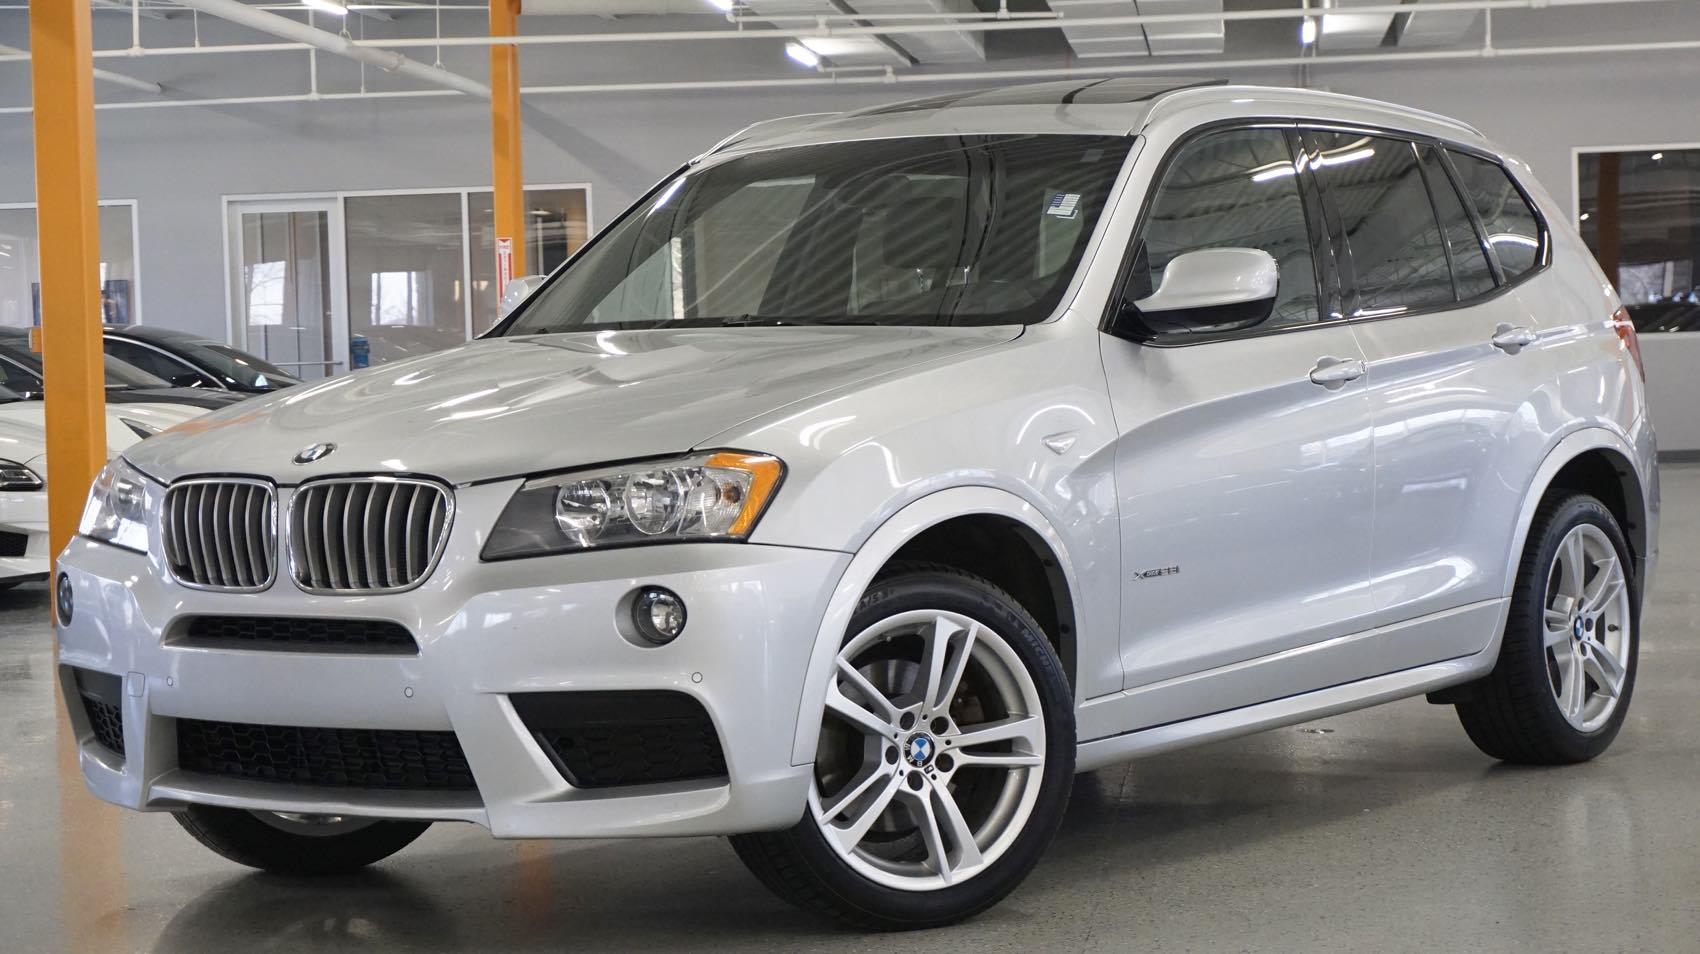 Pre-Owned 2013 BMW X3 xDrive28i, M-Sport, Cold Weather, Technology Pack.Navigation, Hi-Fi Sound